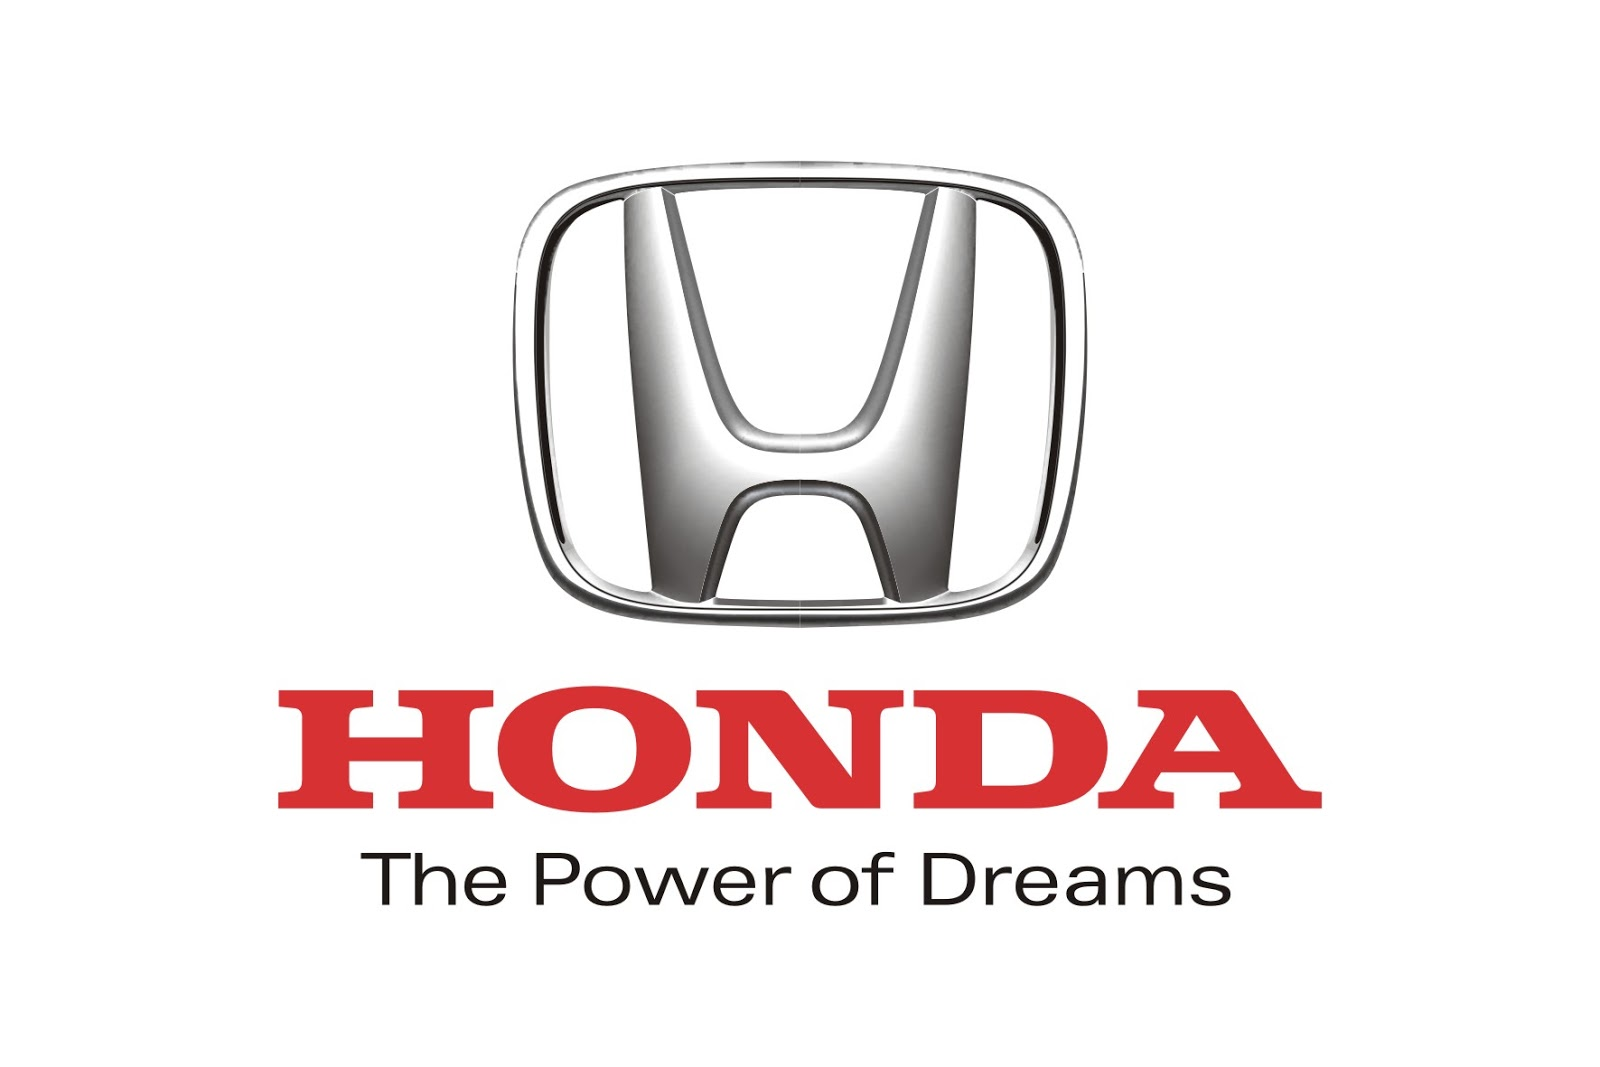 honda car logo logo share. Black Bedroom Furniture Sets. Home Design Ideas